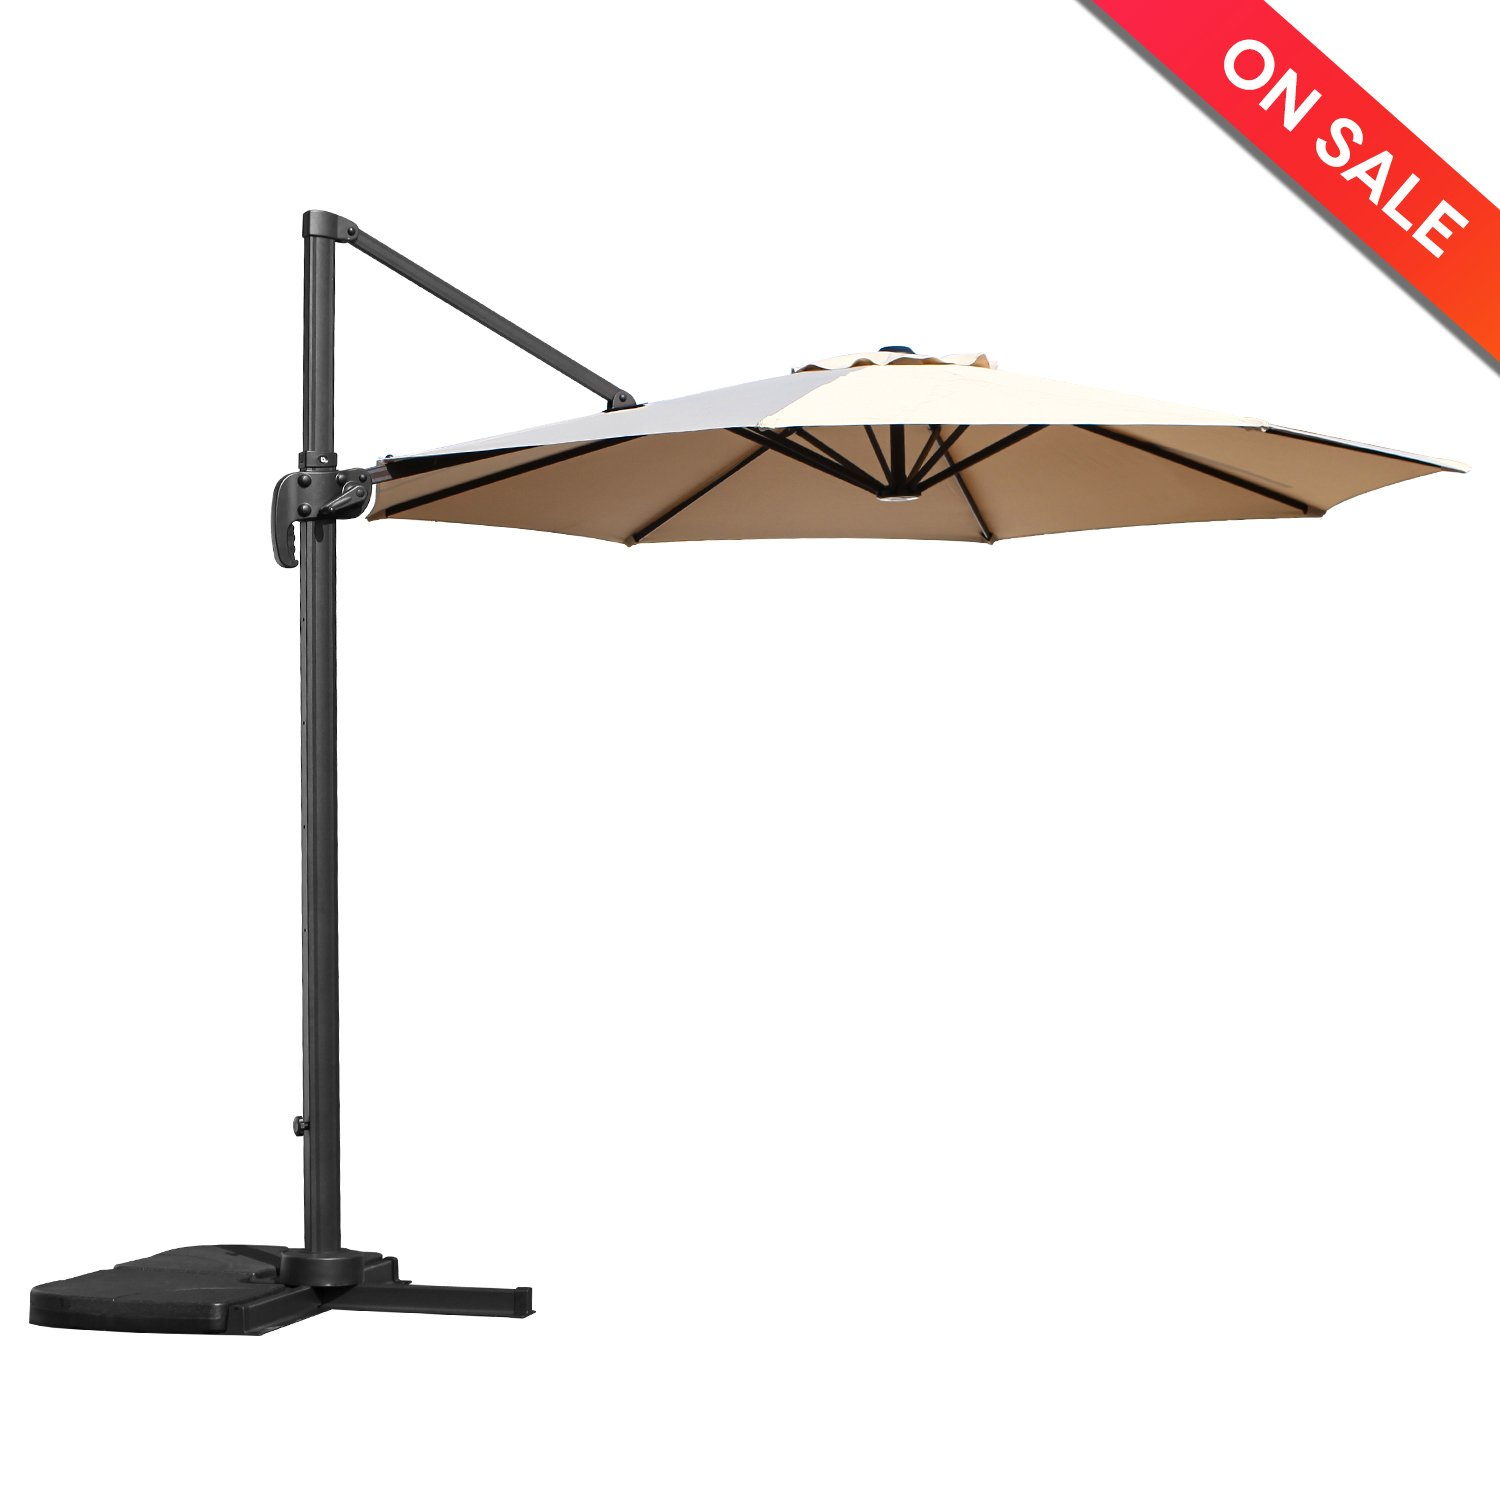 LCH 10 Ft Offset Cantilever Patio Umbrella Hanging Outdoor Market Umbrella - 8 Steels Ribs - 100% Polyester - UV Protective - Beige